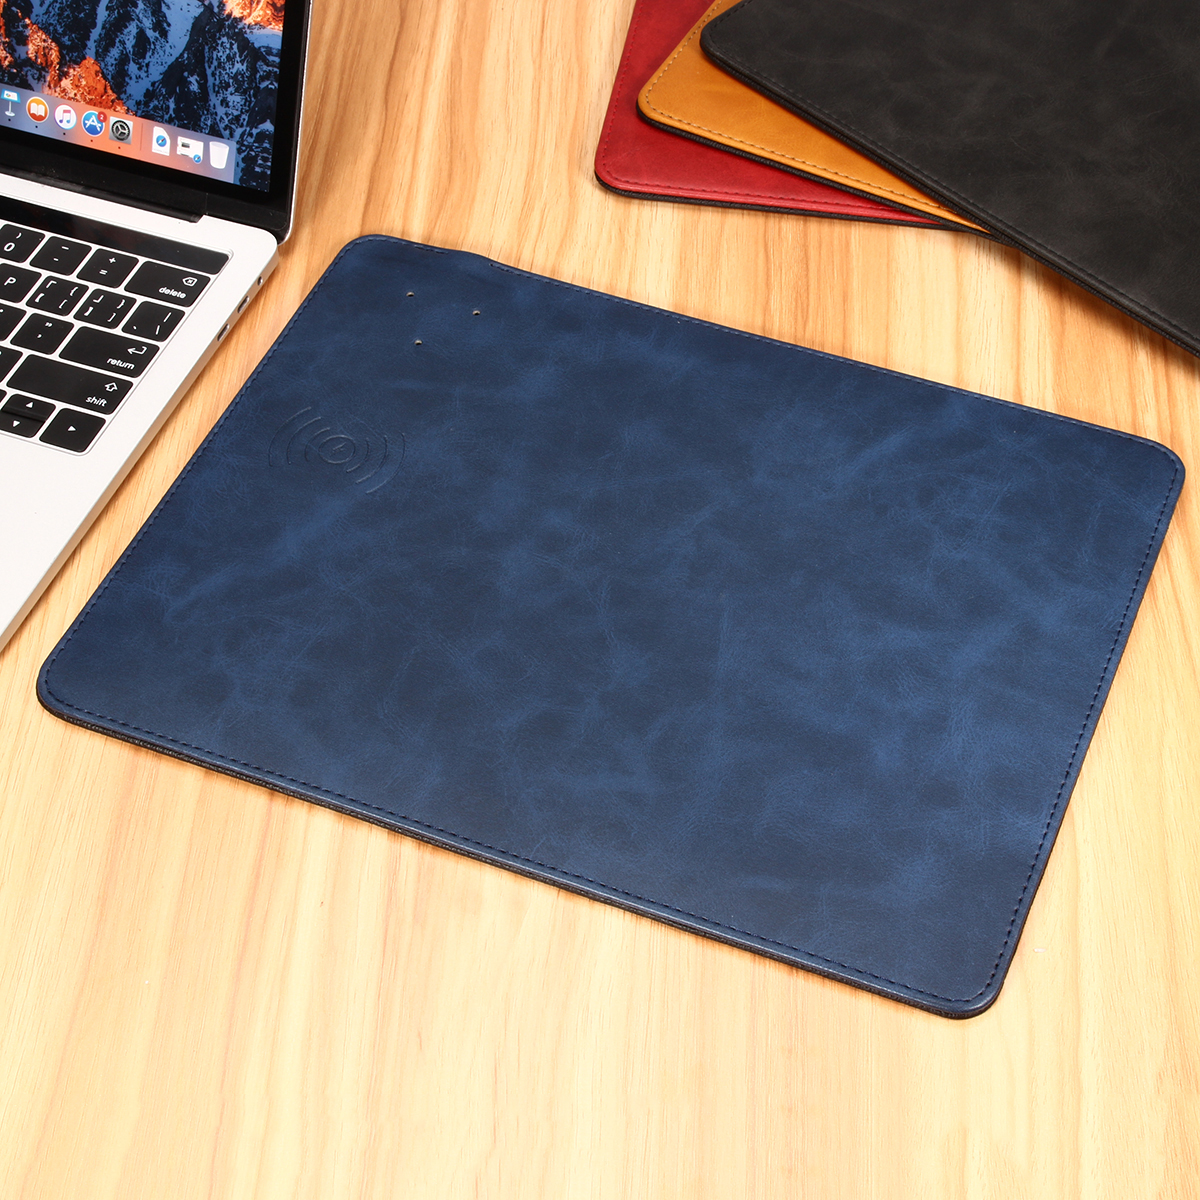 Luxury Qi Wireless Leather Mouse Pad Fast Charging For Sam'sung i'Phone X S8 Plus